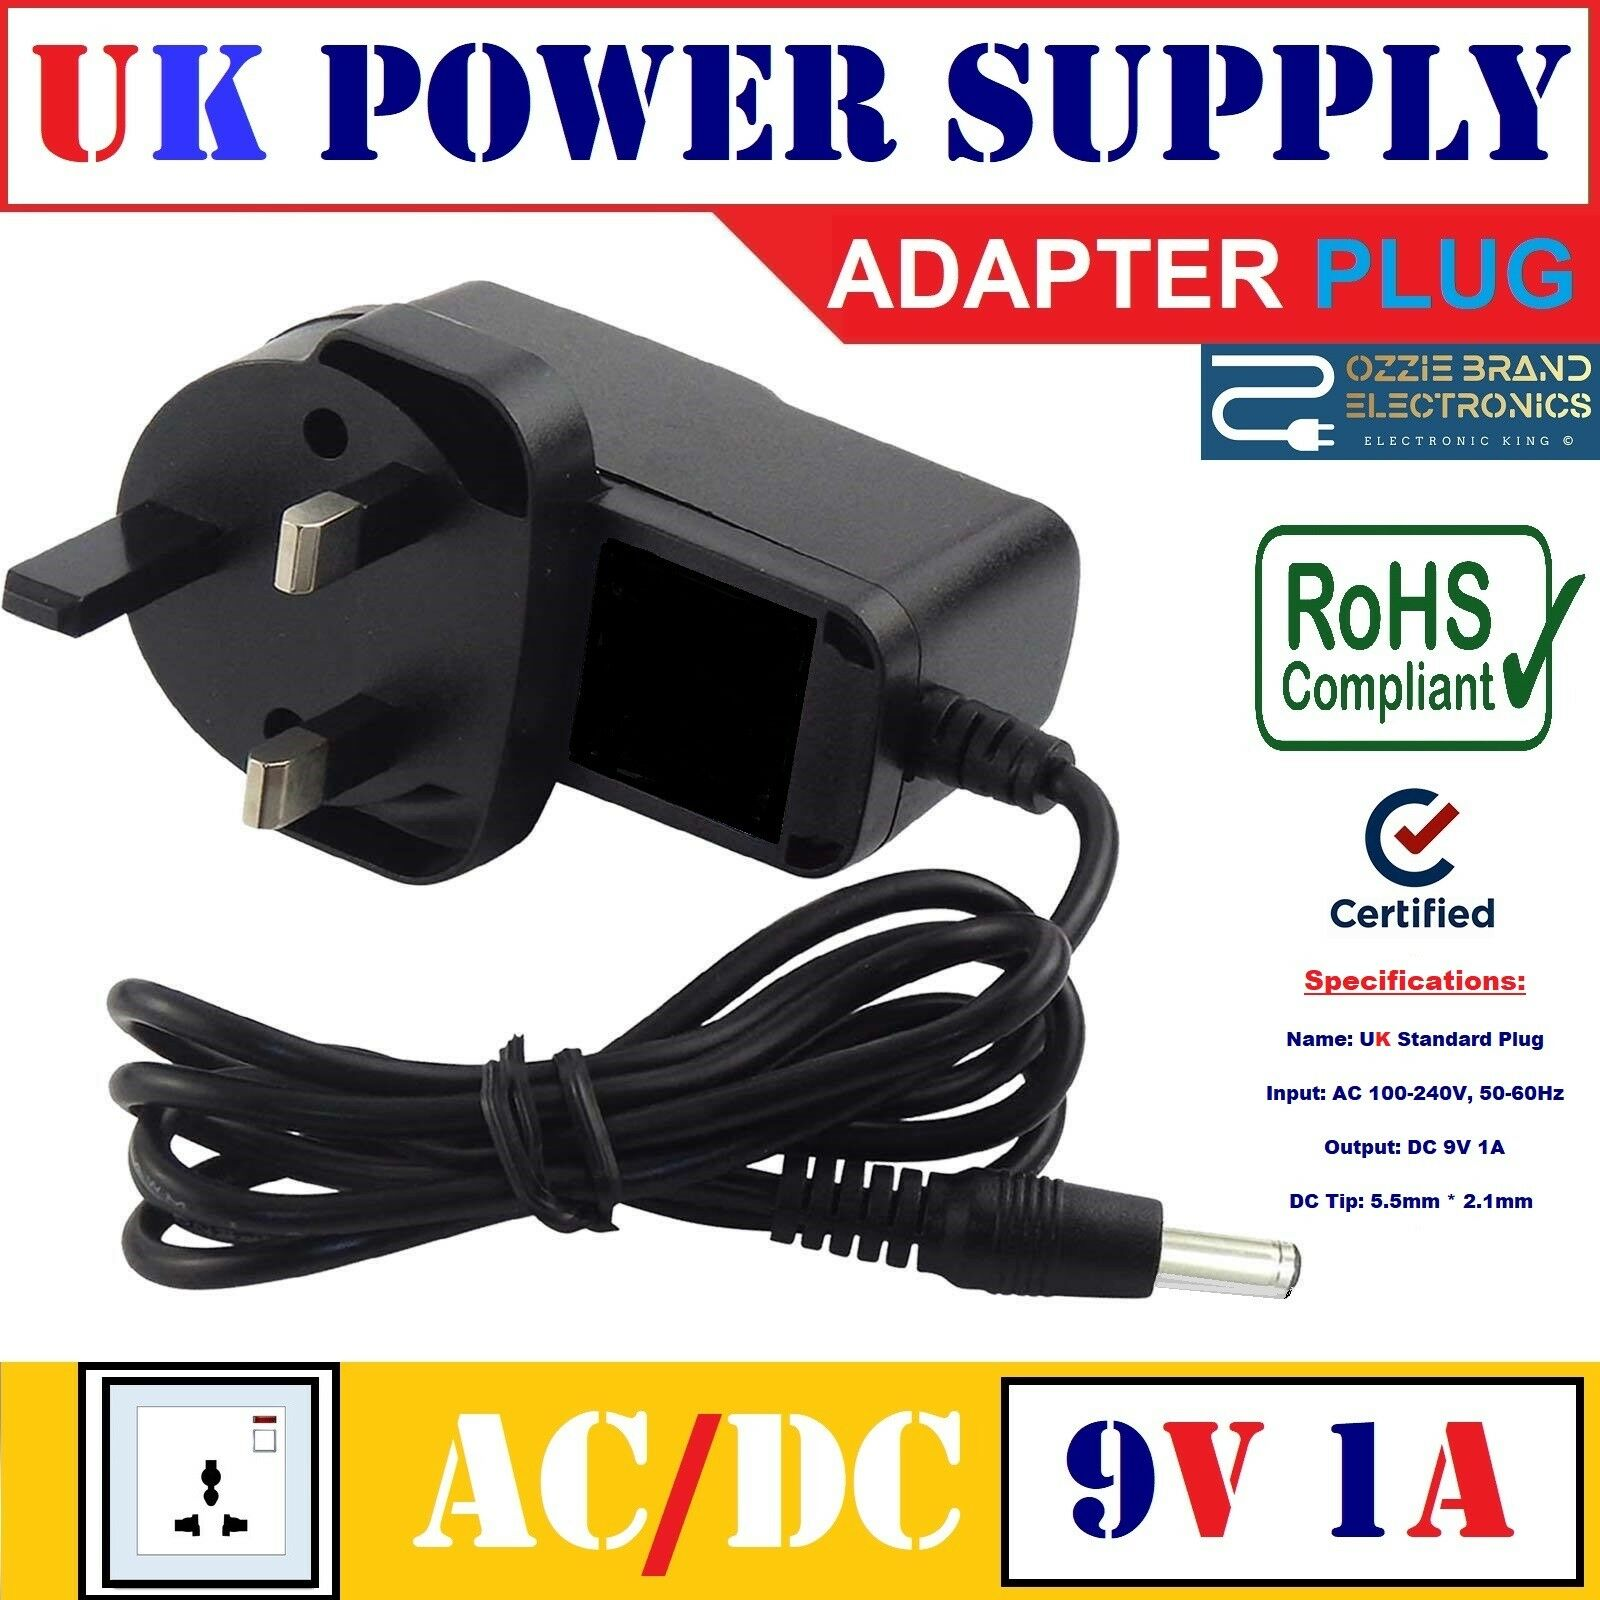 x rocker gaming chair power cord rosewood chairs nz uk 9v 1a ac dc supply adapter for compatible